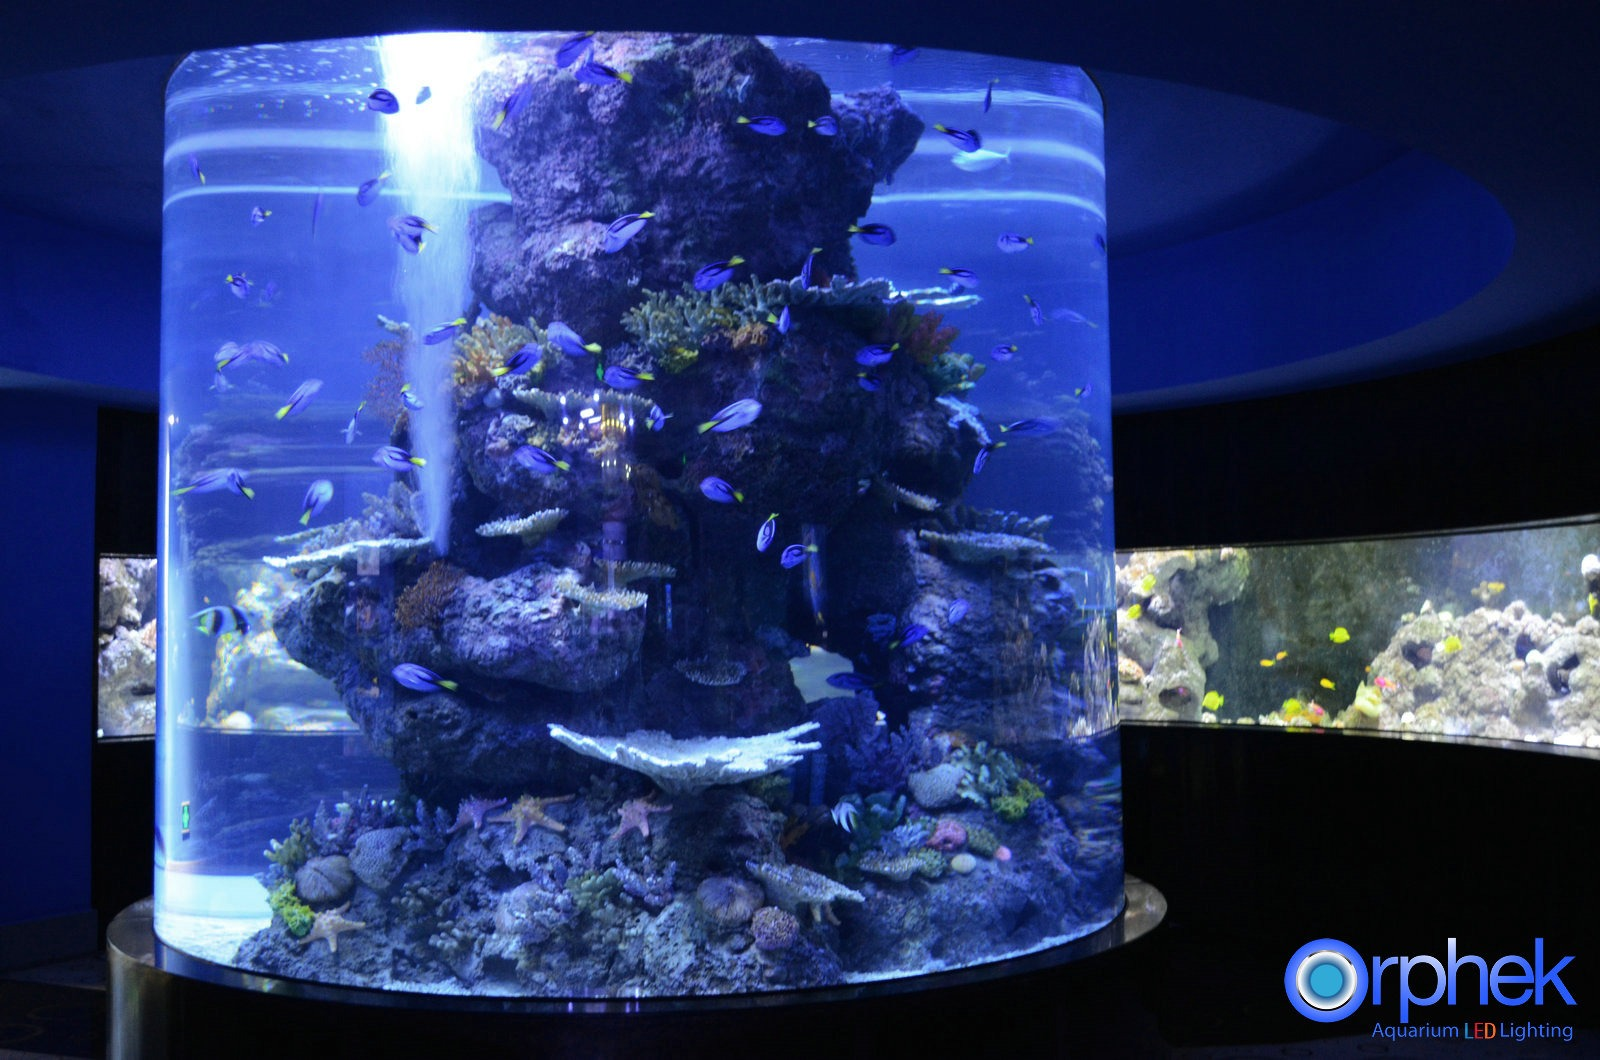 beste reef akvarium LED belysning